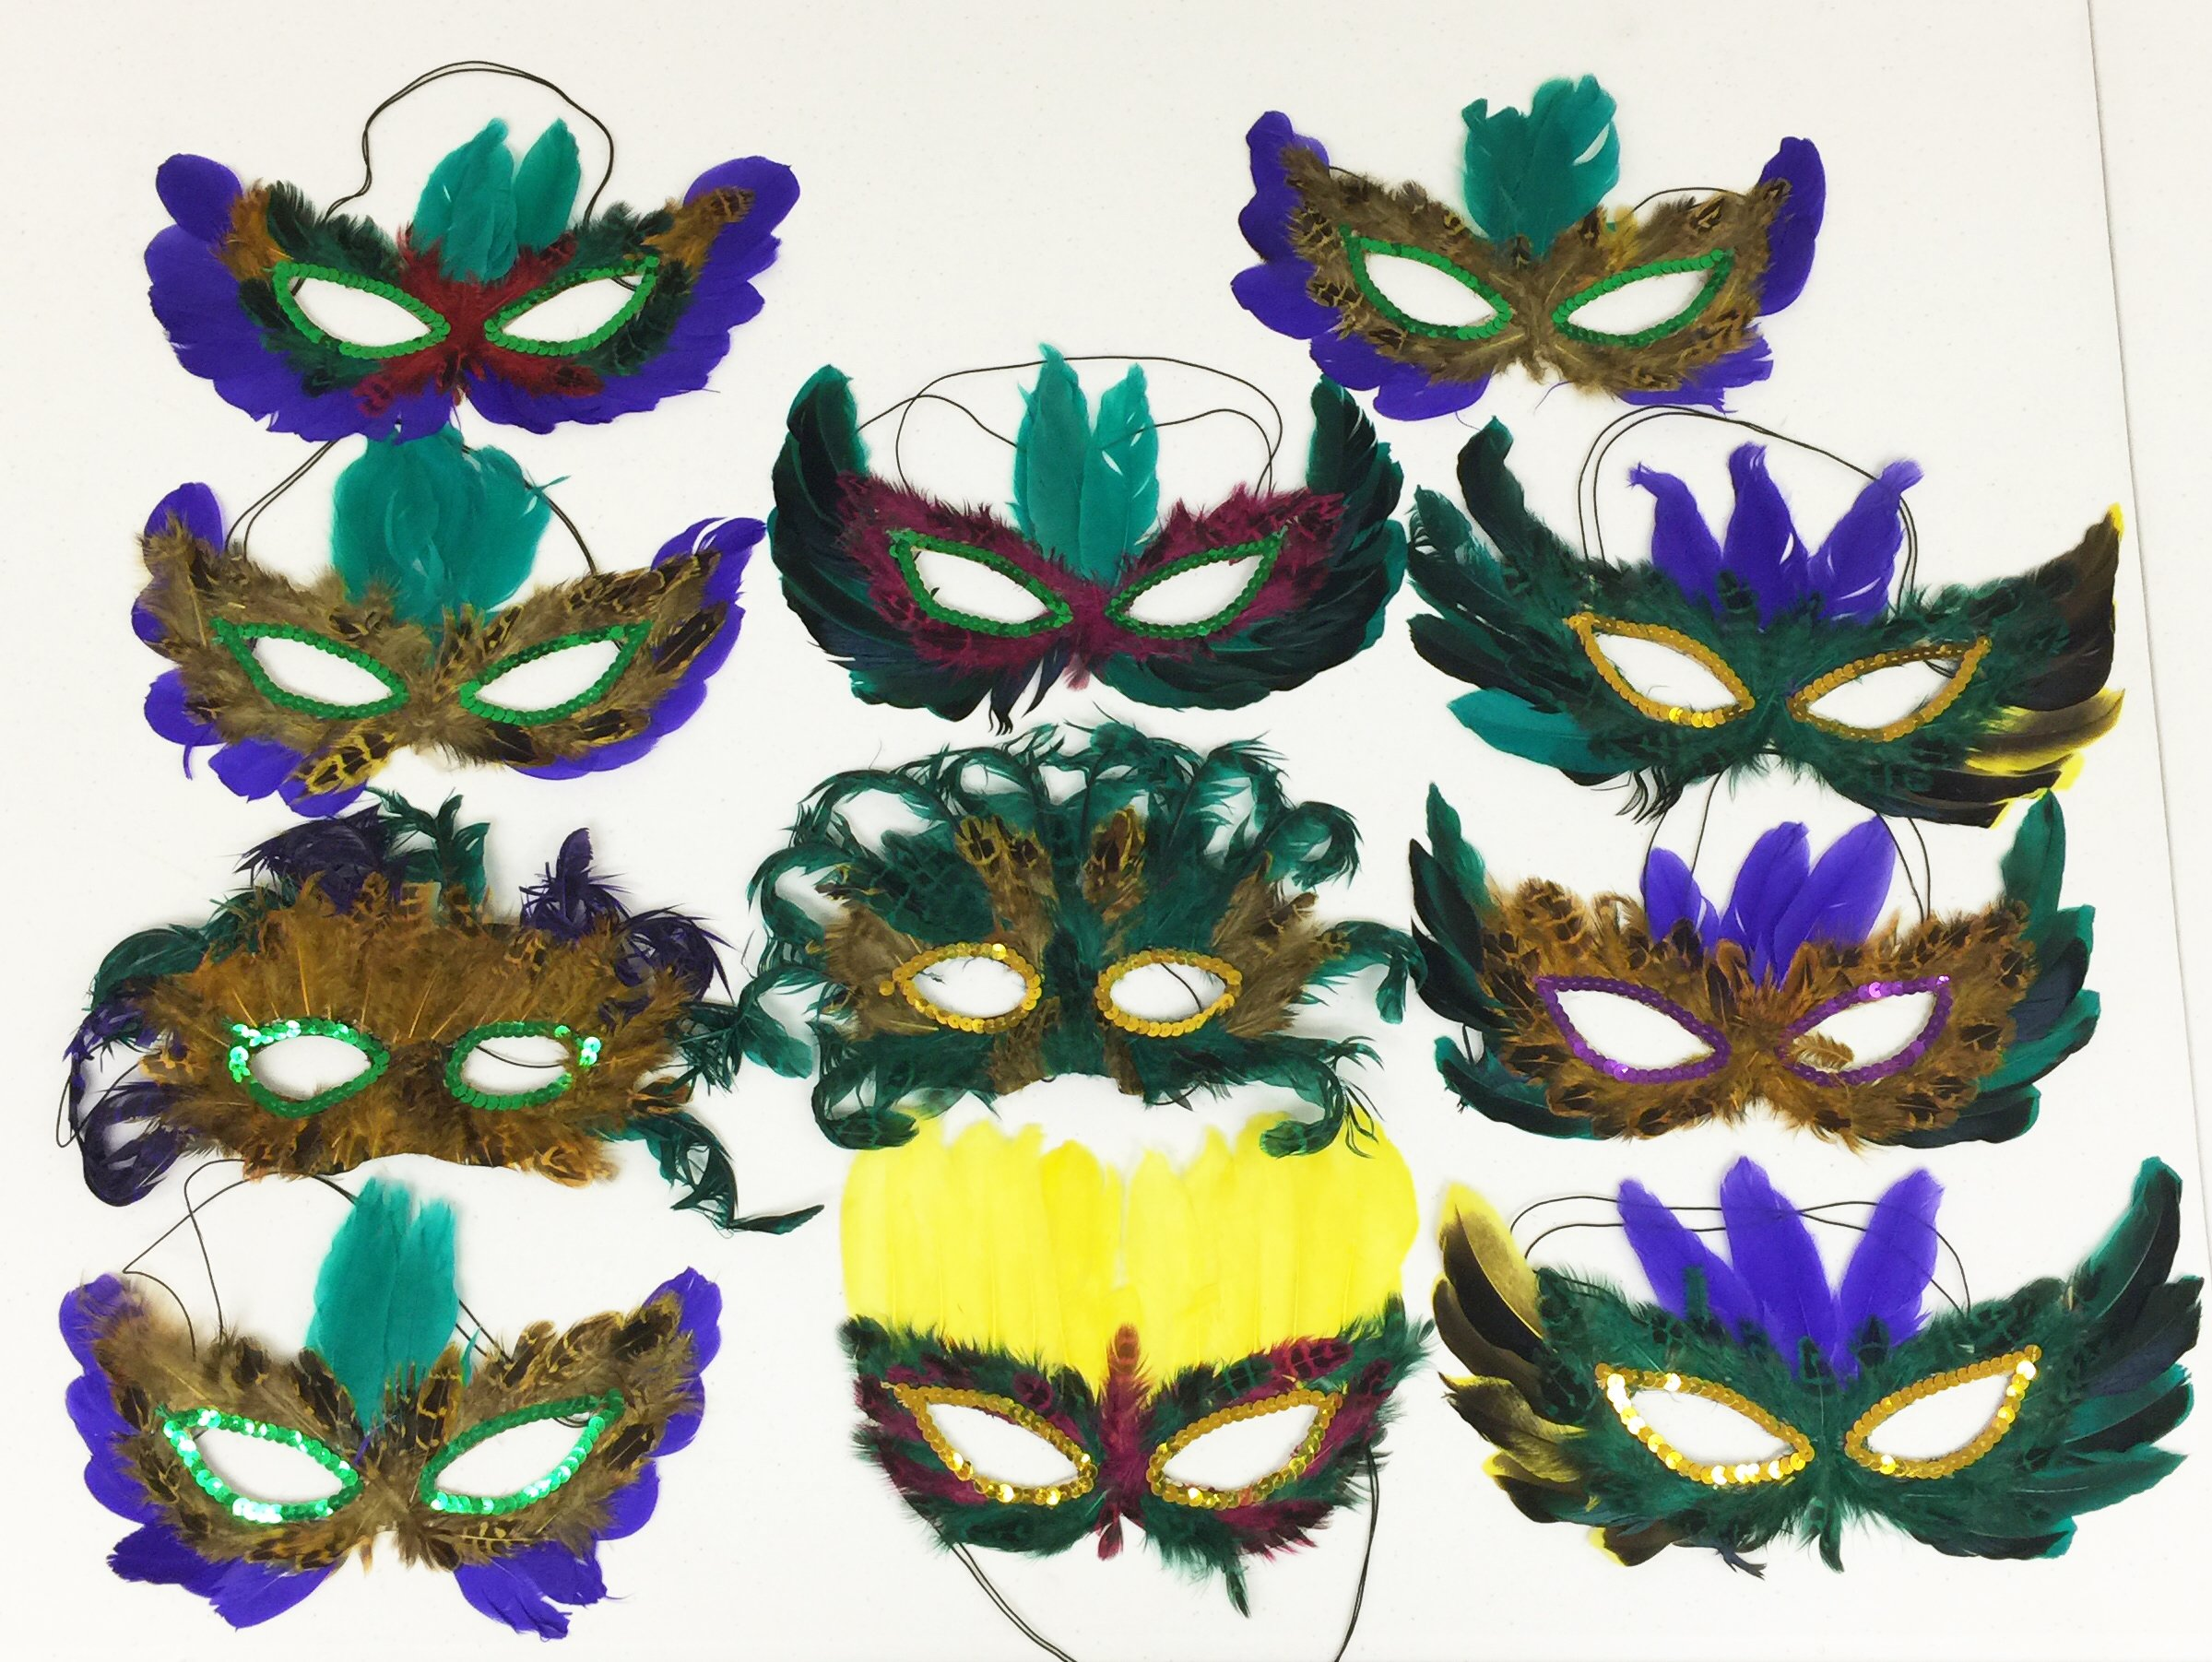 GIFTEXPRESS Mardi Gras Masks Perfect for Mardi Gras party/Masquerade themed party/fat Tuesday/Wedding reception/Anniversary part/Musical Cinderella/photo booth accessory/costume mask by GiftExpress